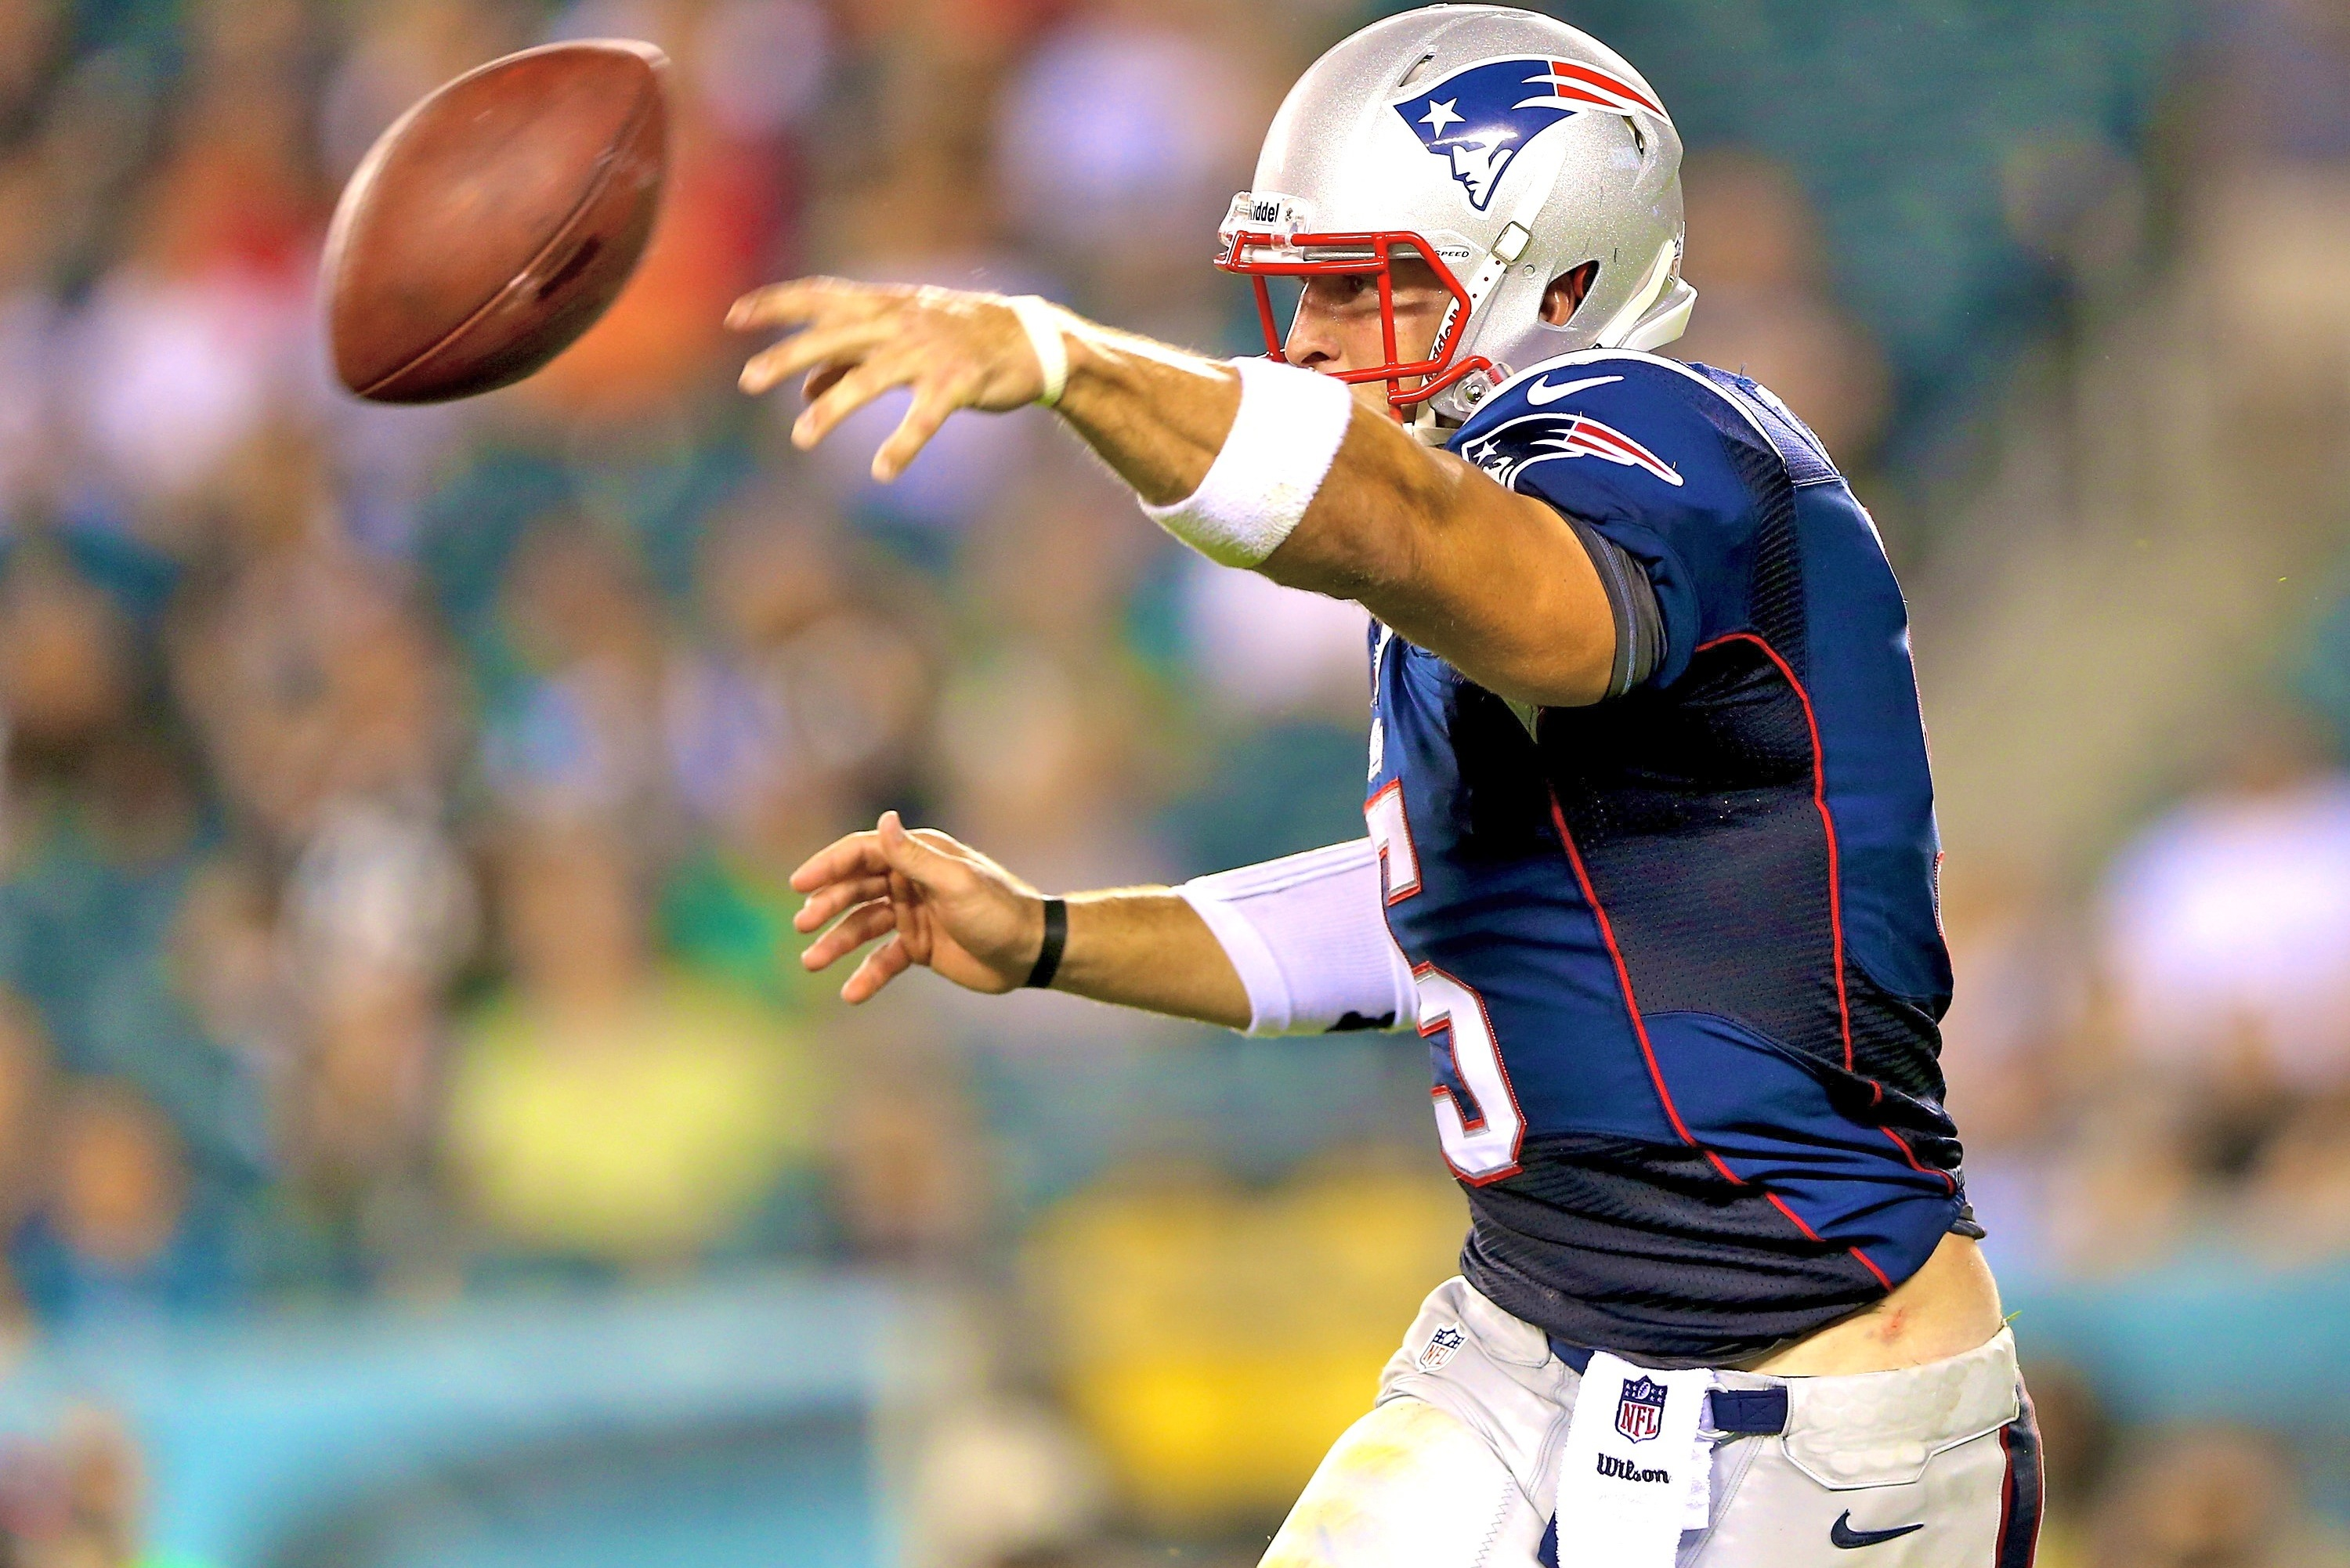 Scouts' Honor: Tim Tebow Not Fit for NFL, CFL, or Arena League ...